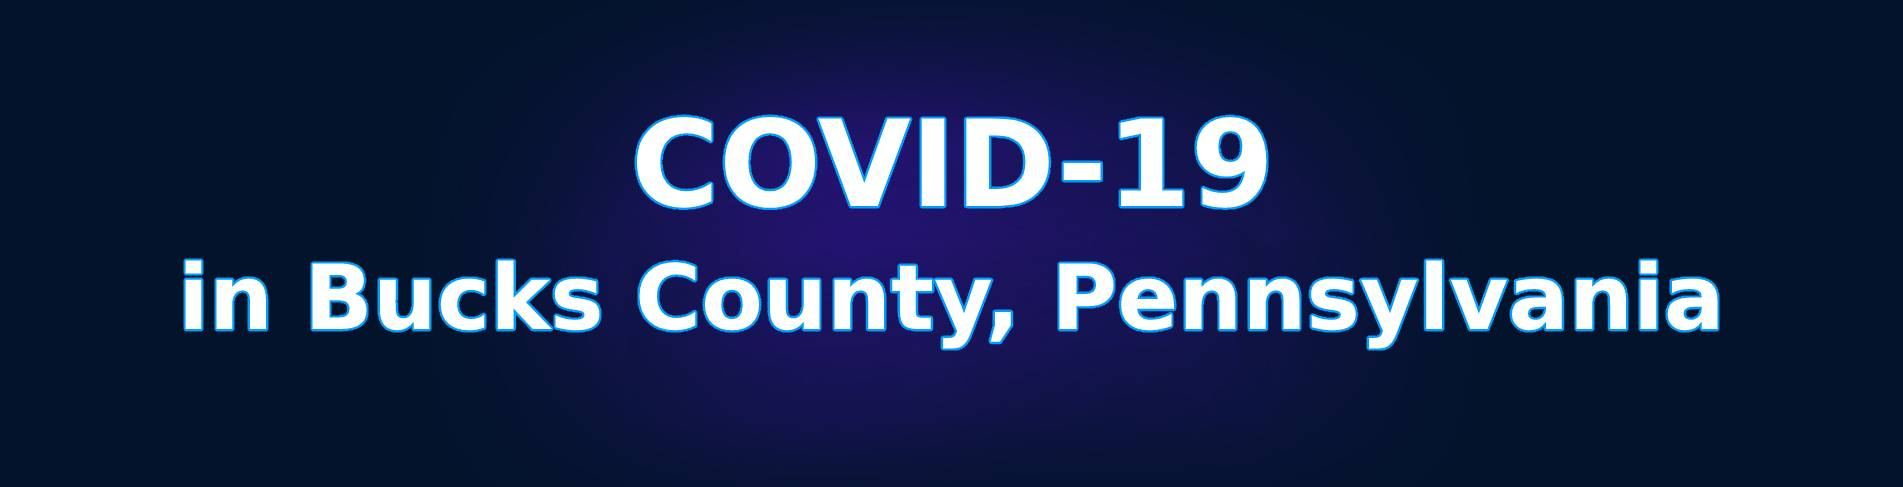 COVID-19 in Bucks County, Pennsylvania